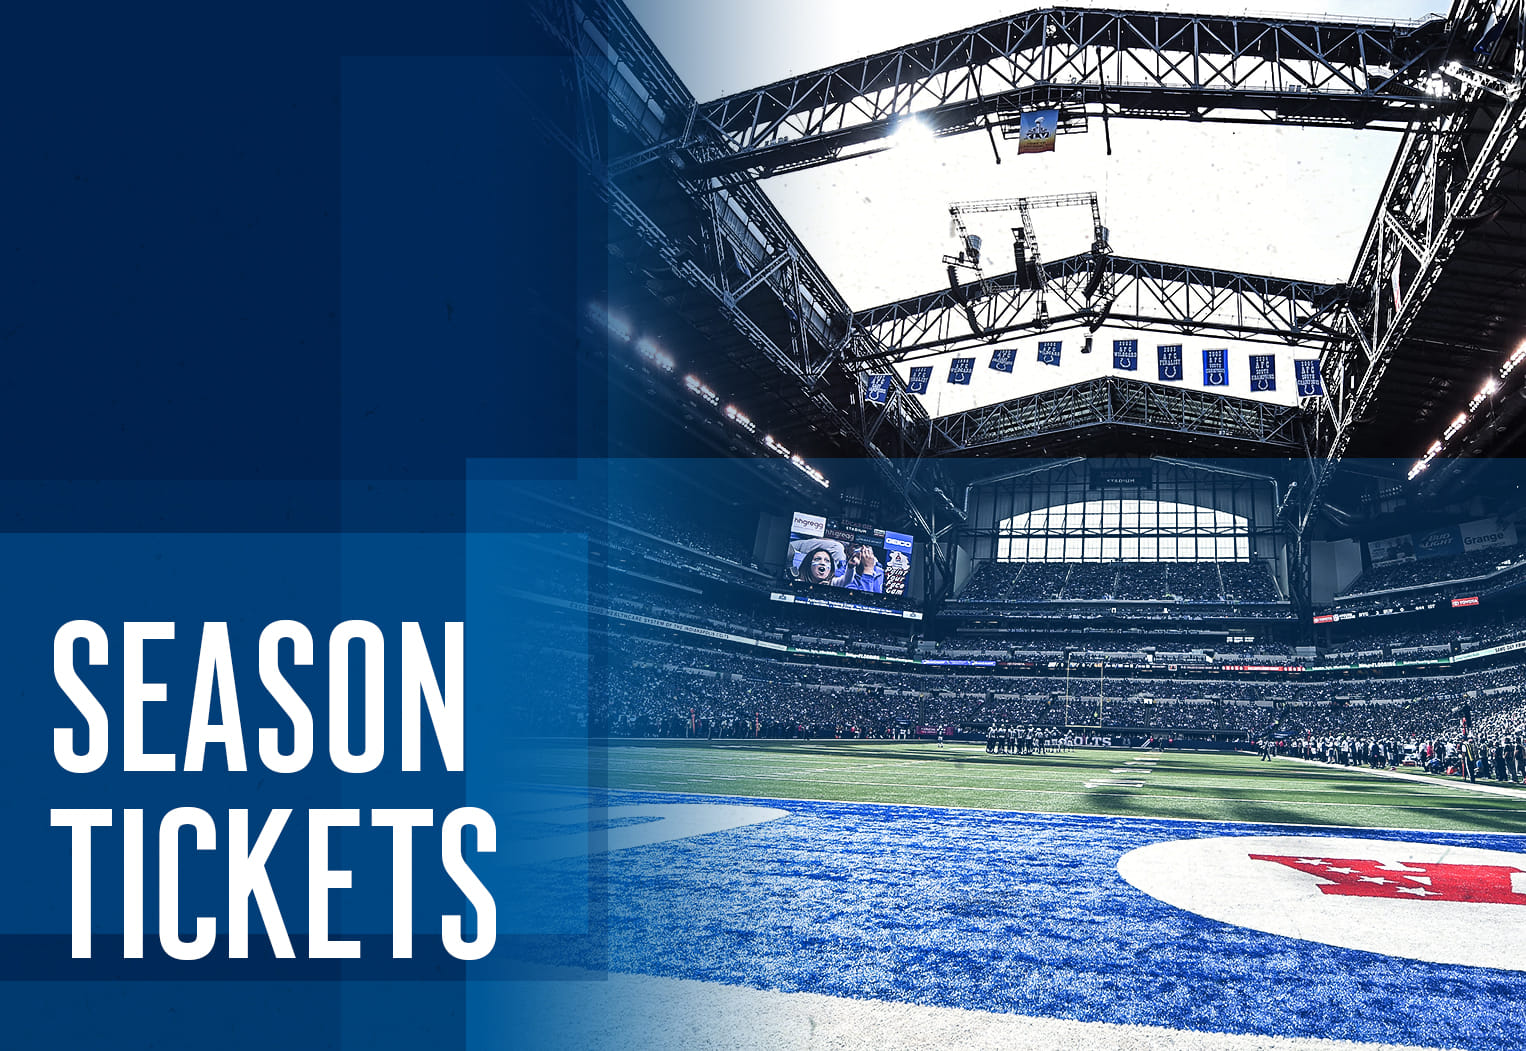 Colts Home Schedule 2020.Indianapolis Colts Tickets